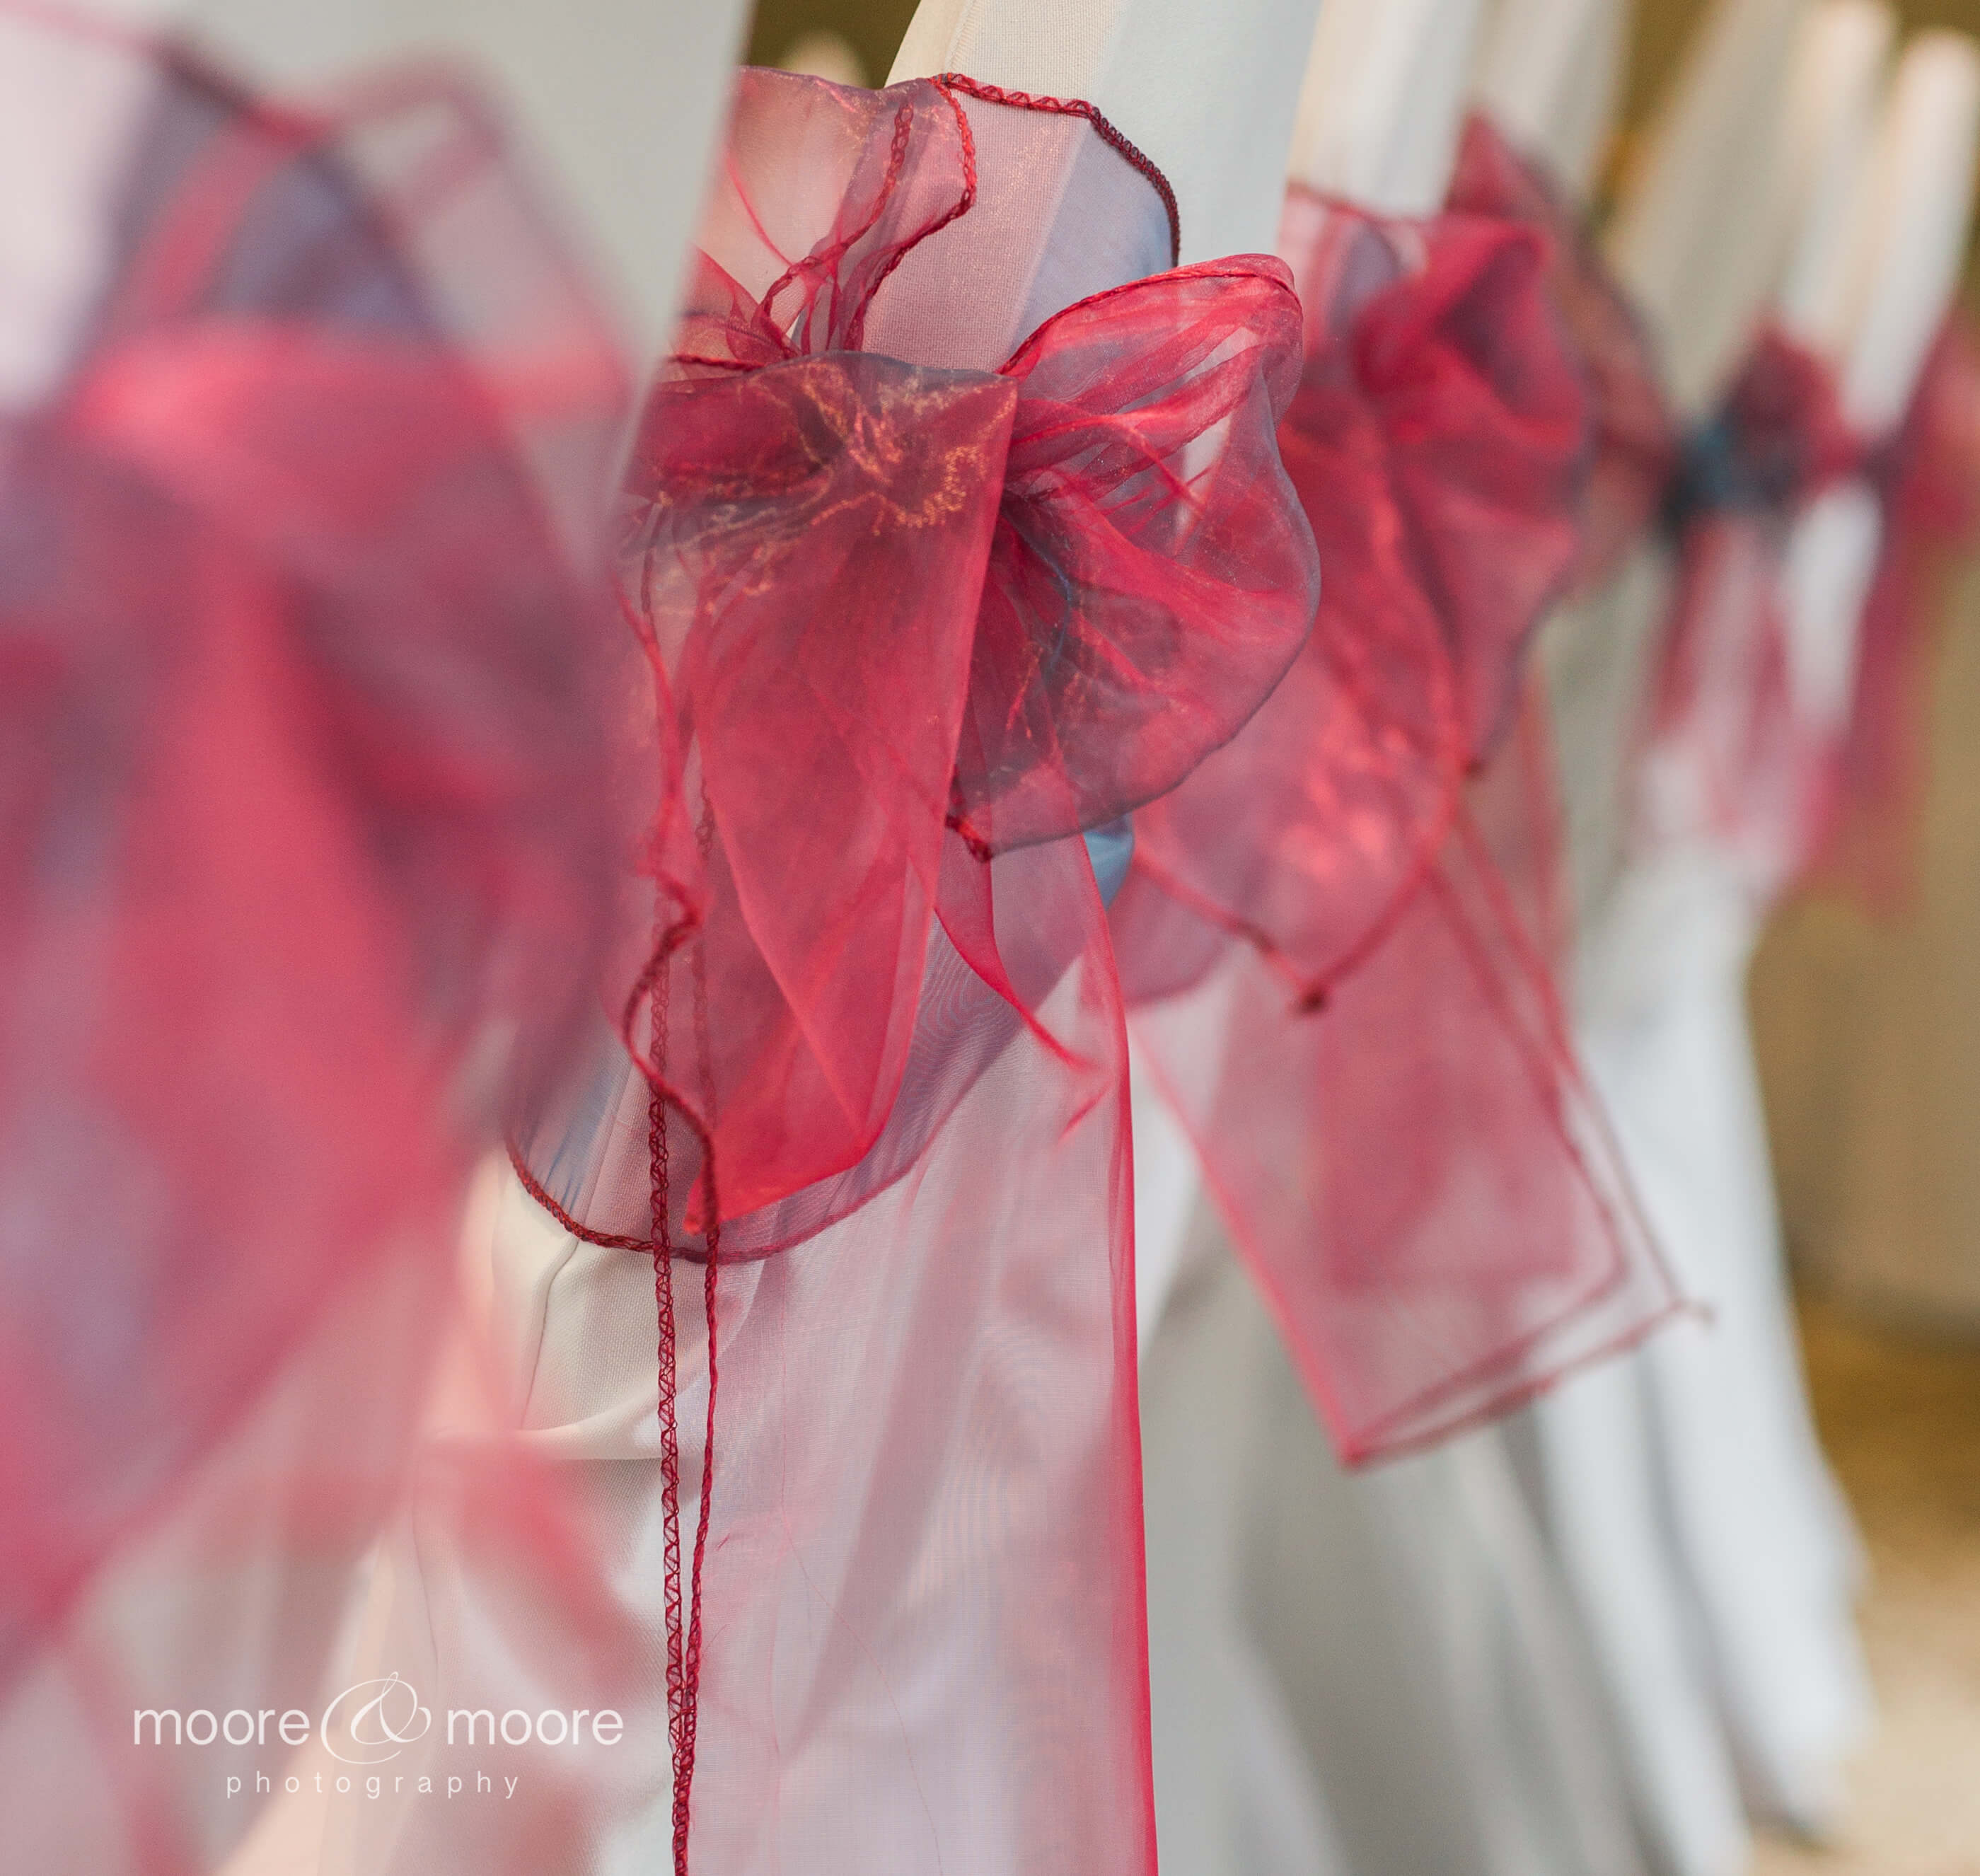 wedding budget - tips from moore&moore photography, wedding photographers hampshire